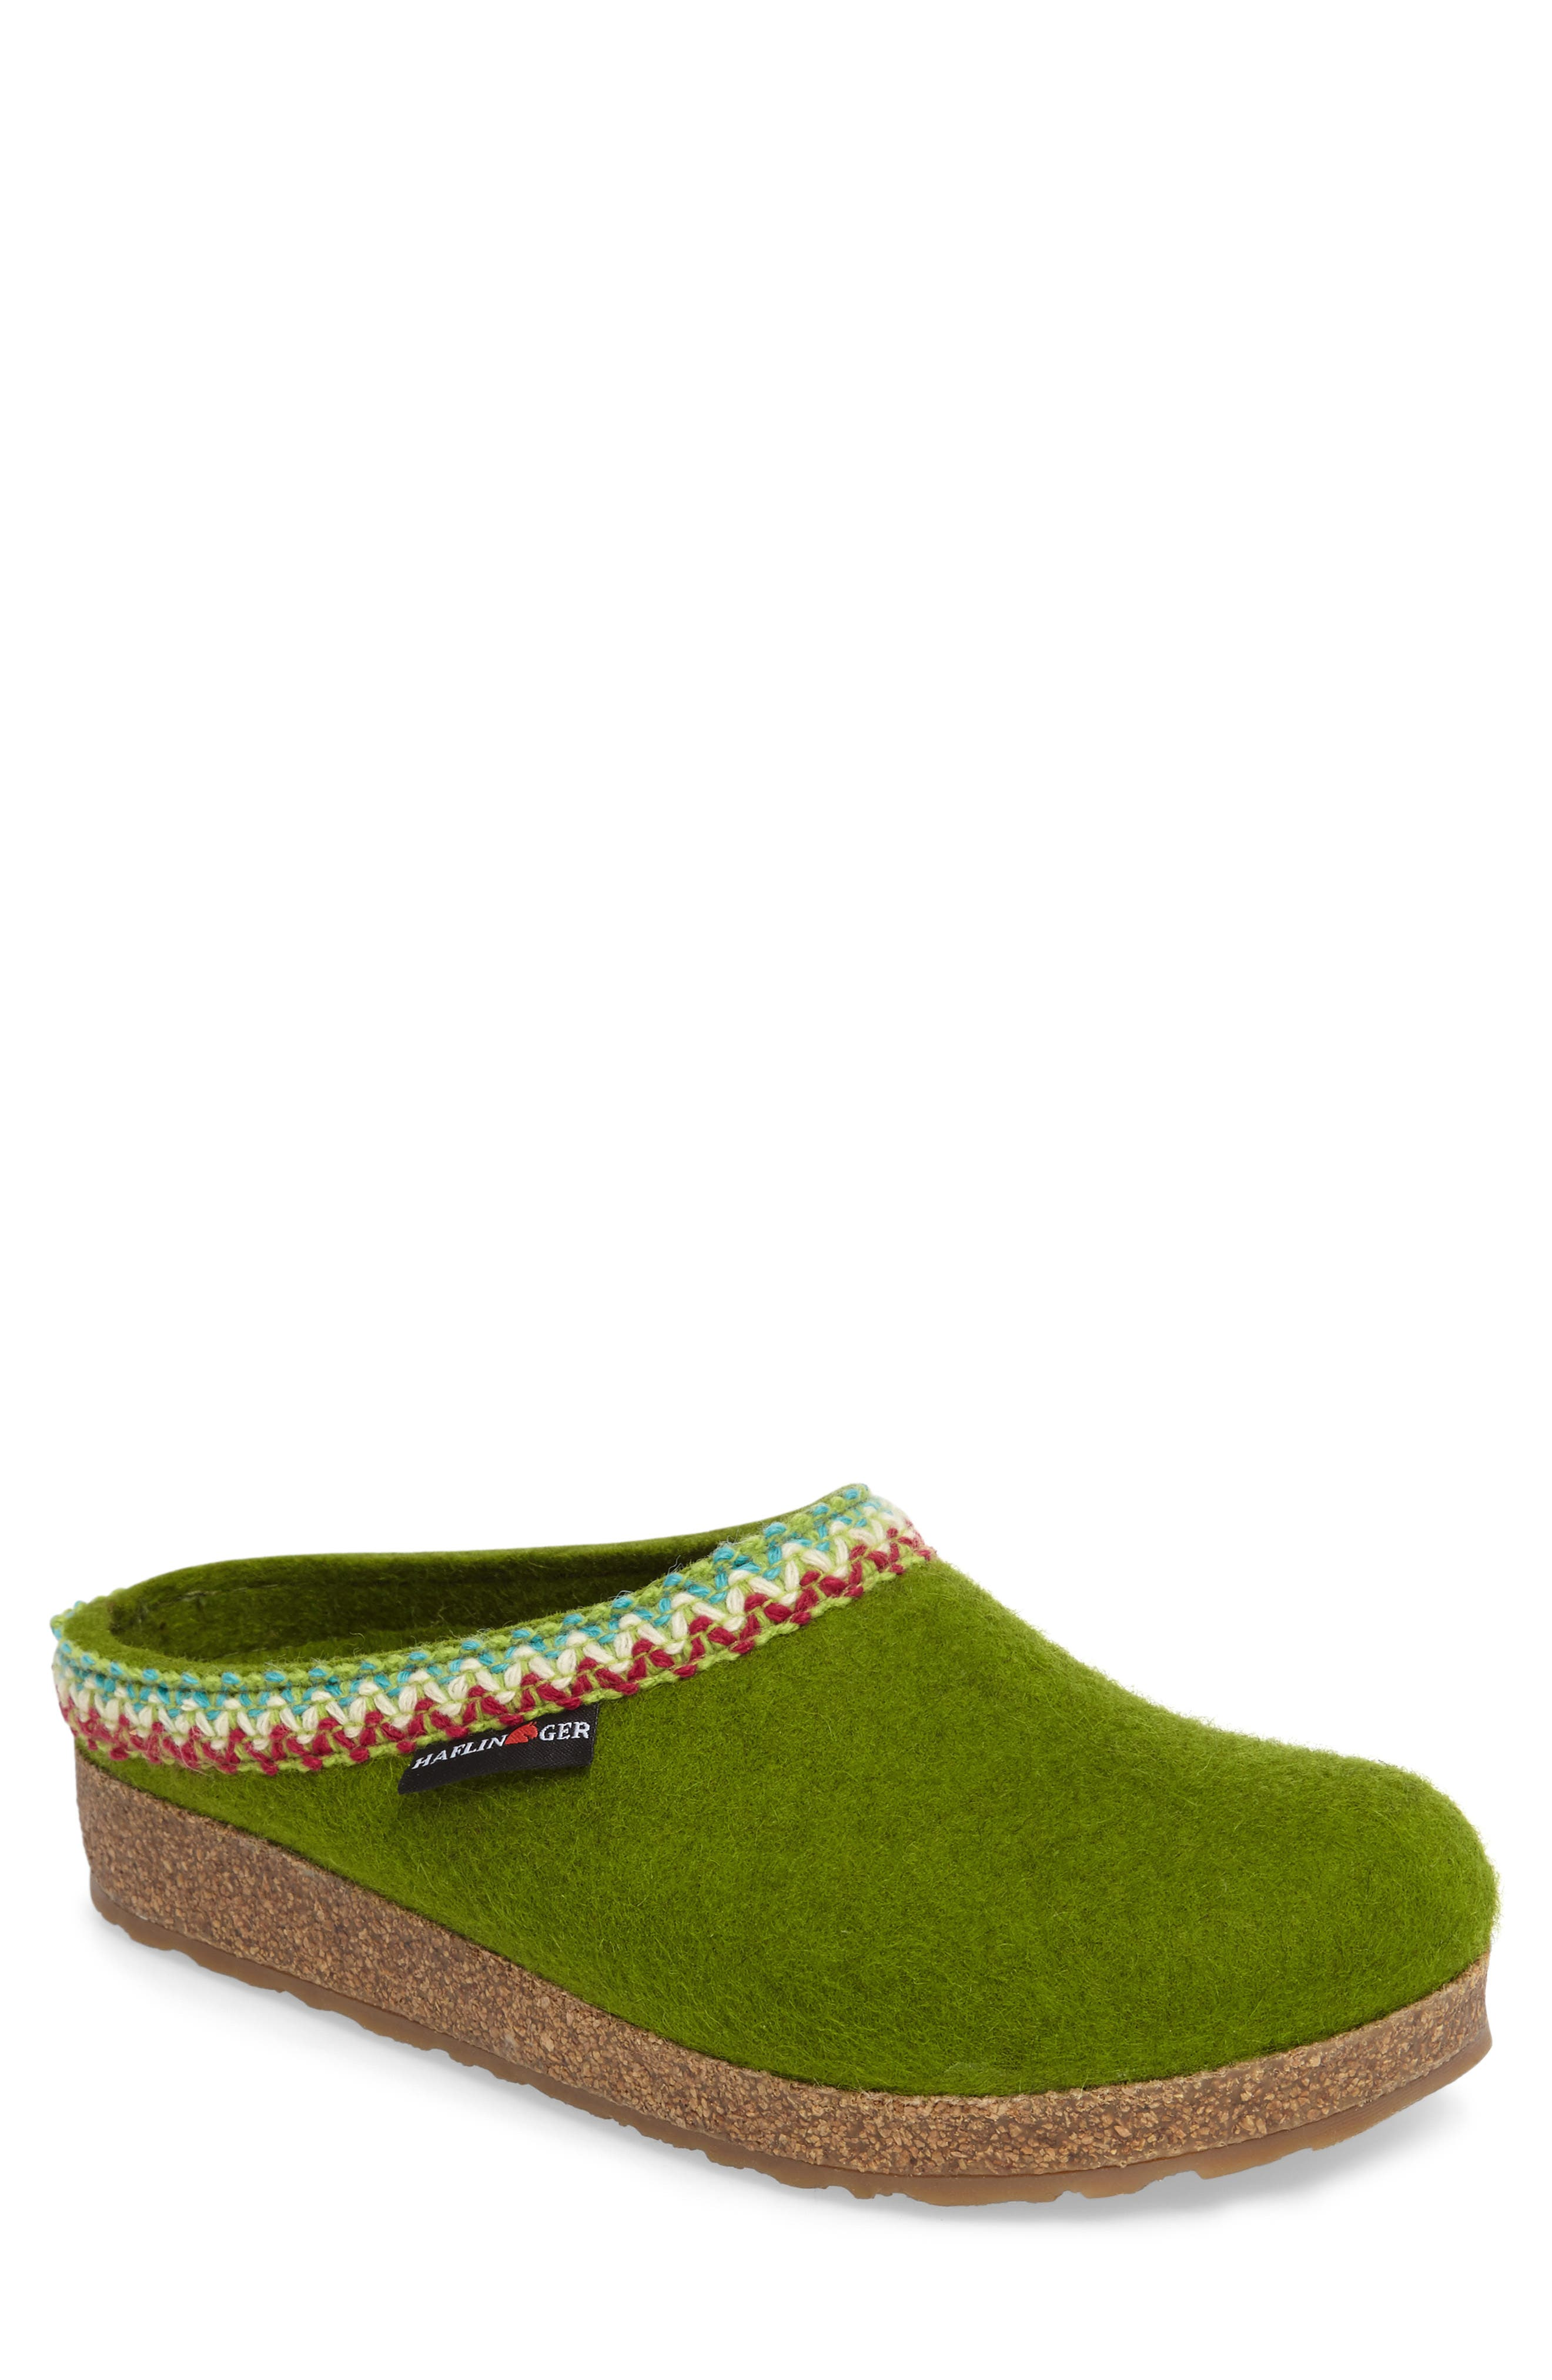 Zigzag Slipper,                             Alternate thumbnail 5, color,